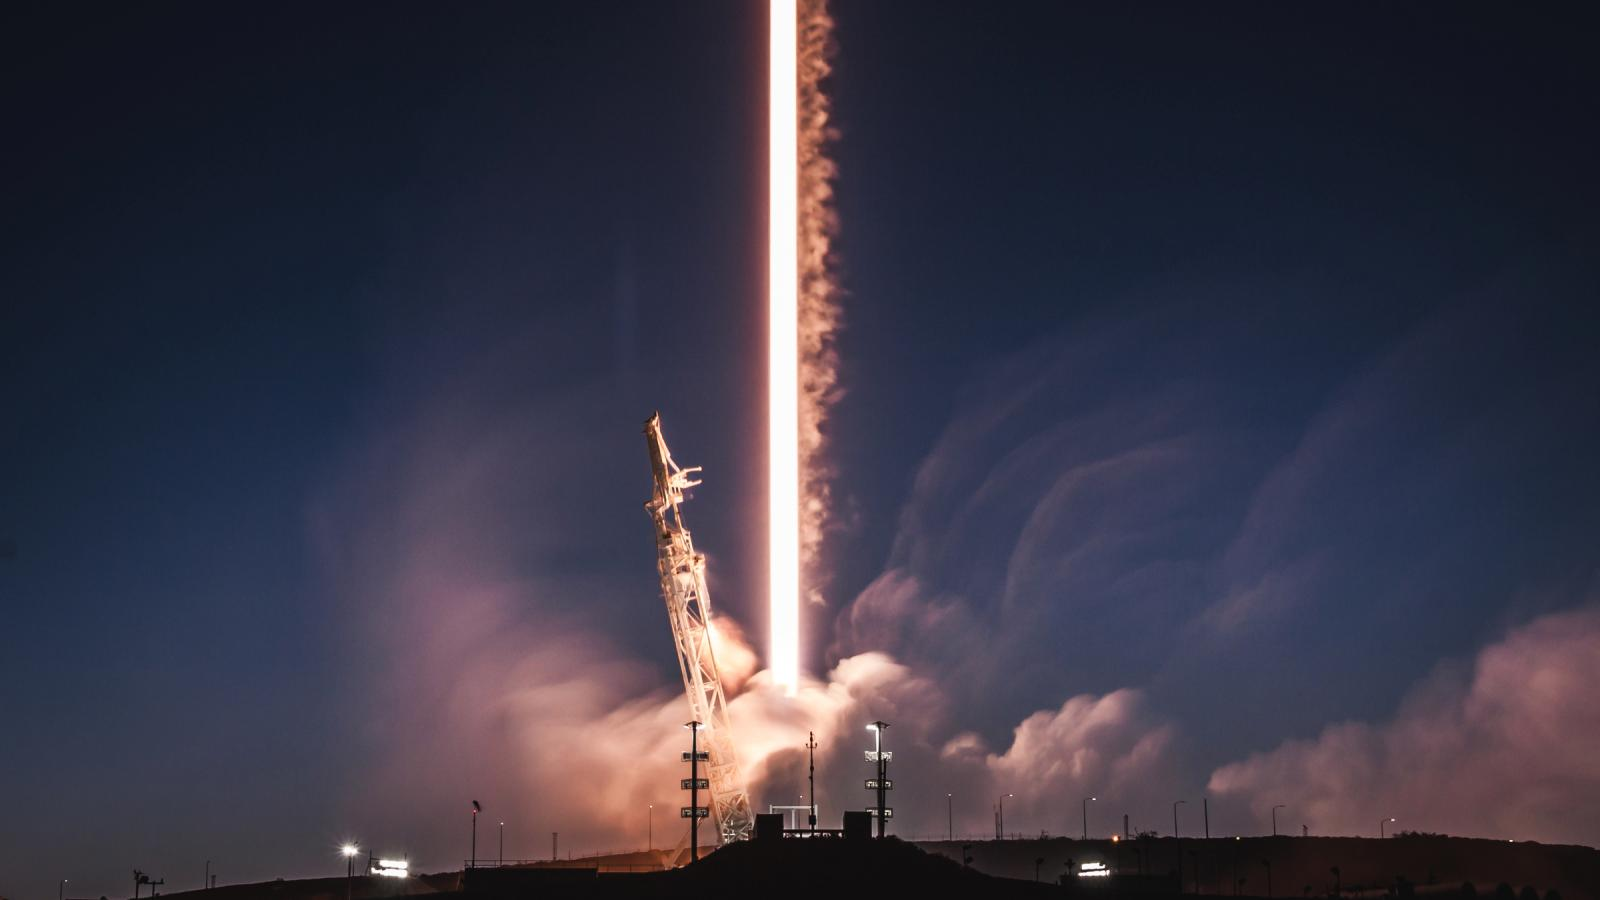 34+ SpaceX Launch Wallpapers on WallpaperSafari